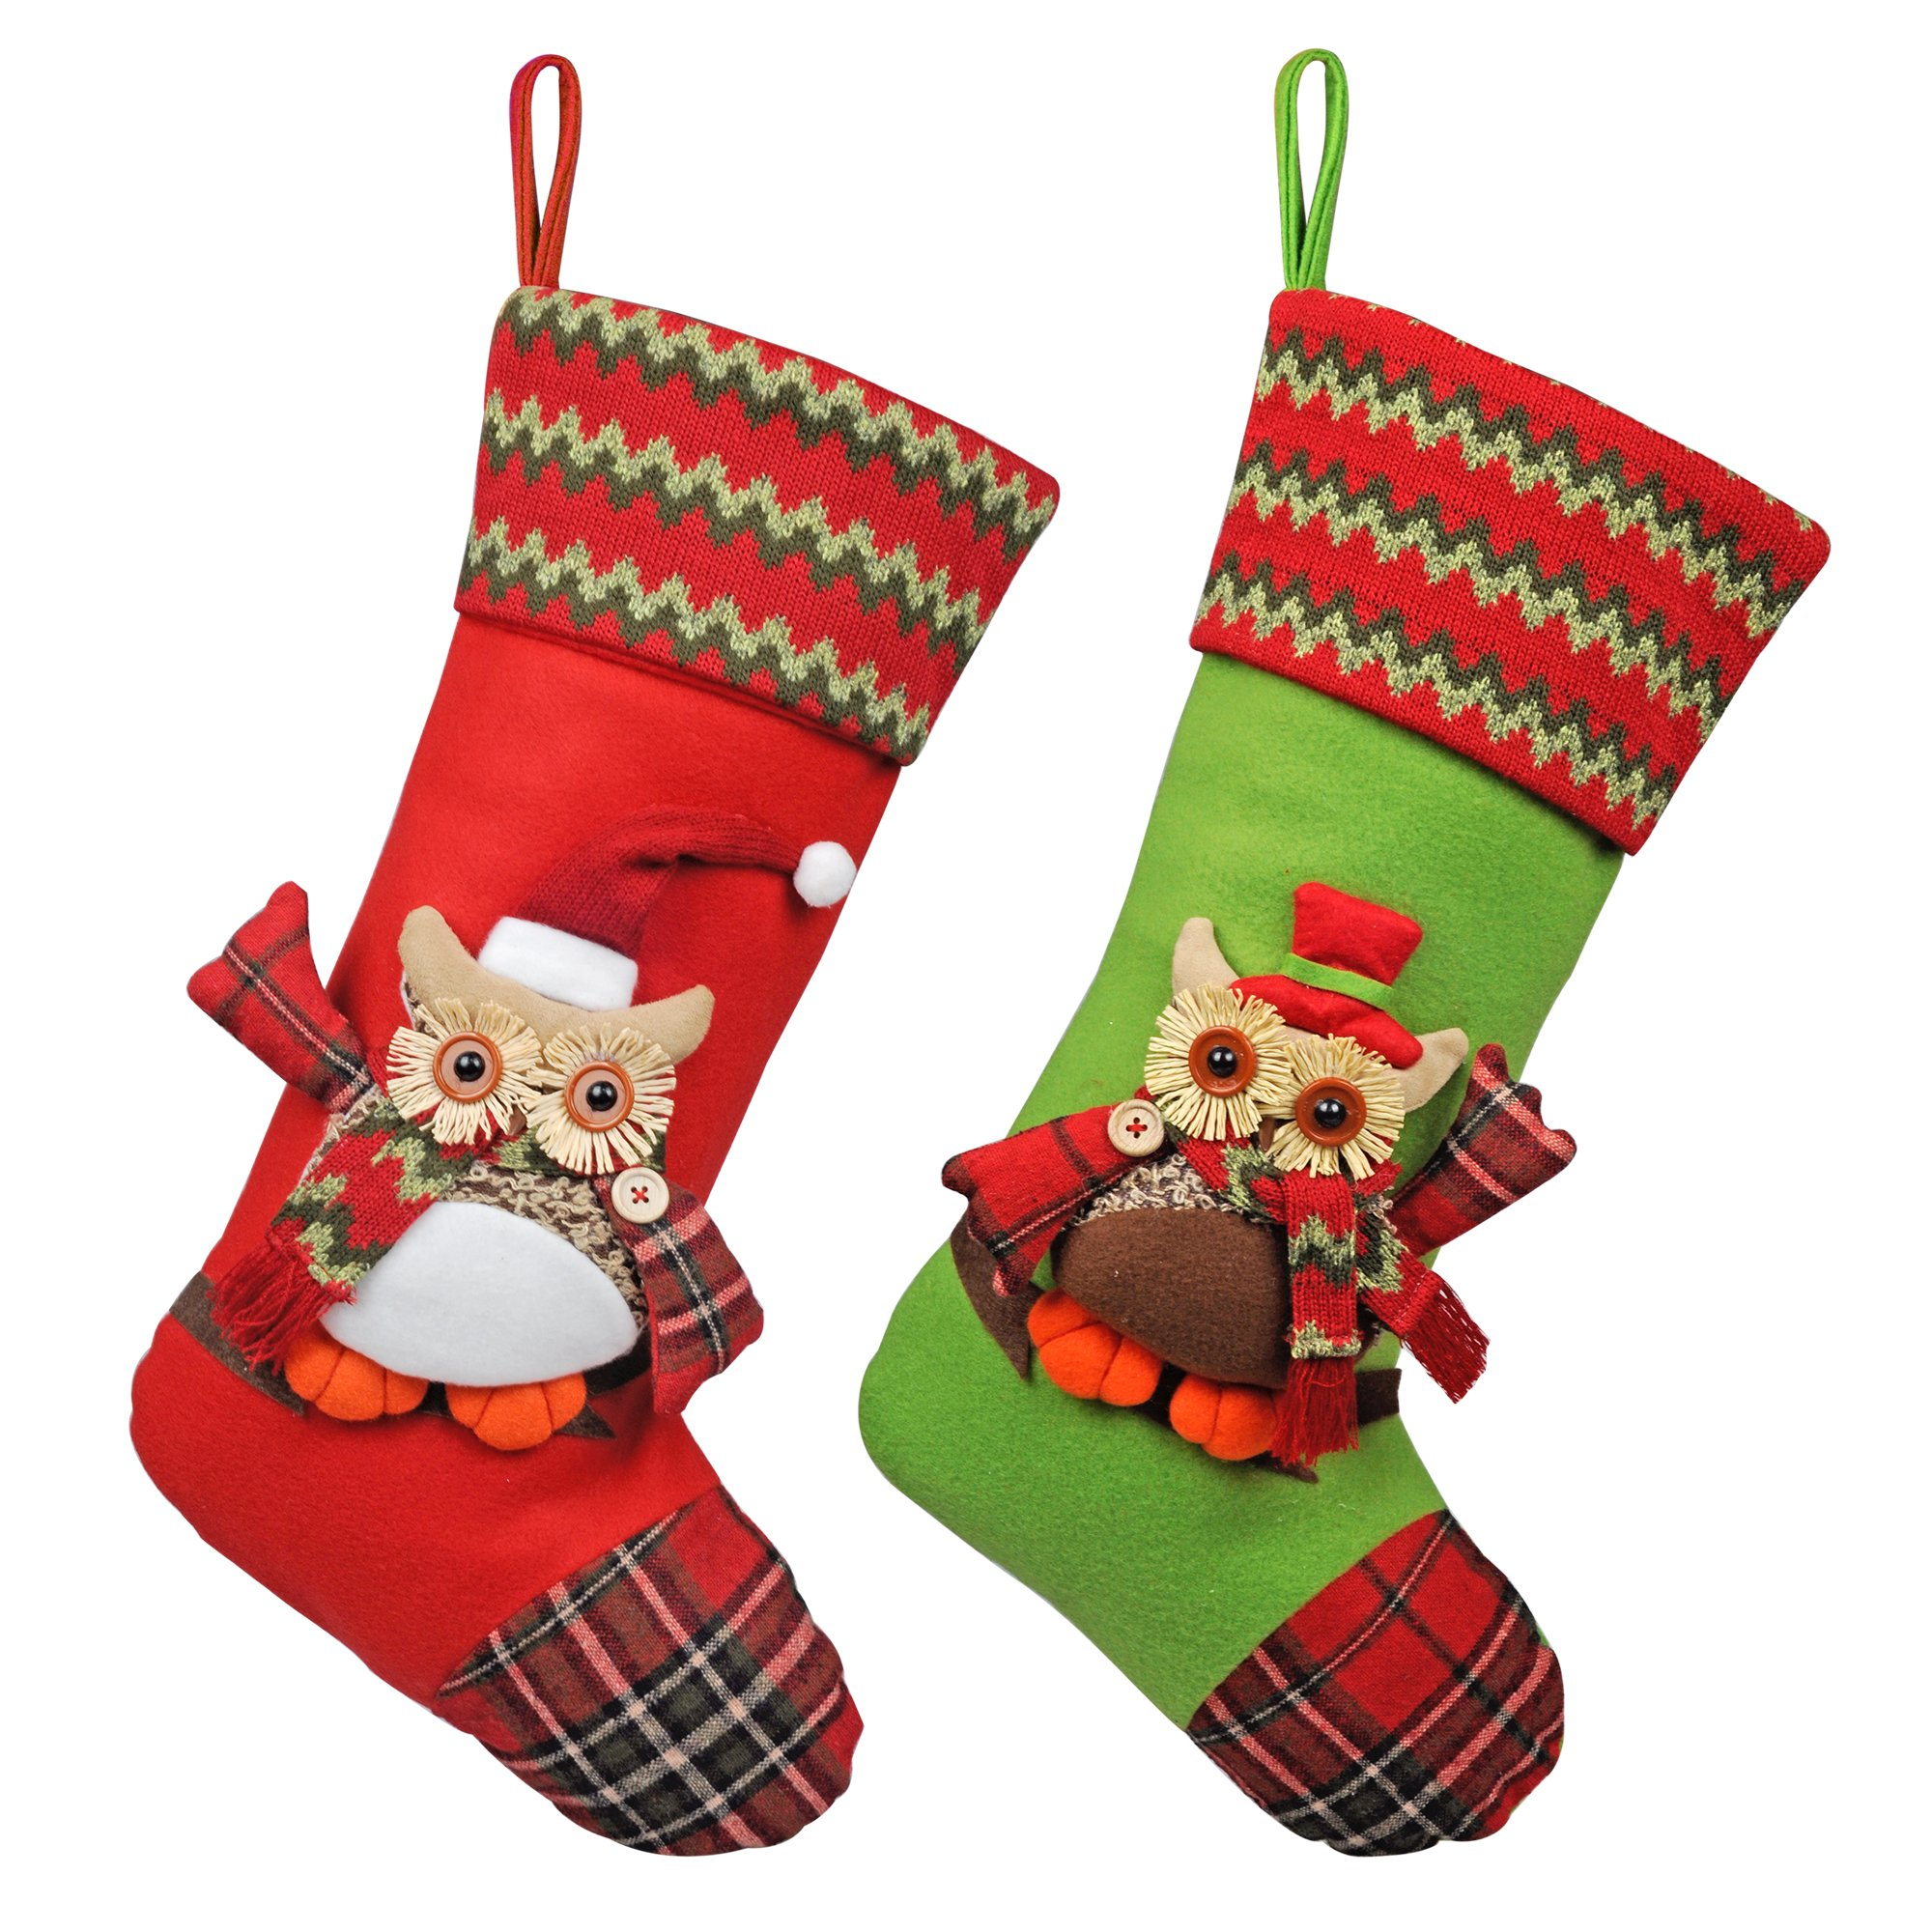 """KI Store Christmas Stockings Set of 2 Rustic Large Goody Gift Bags Ornaments for Kids 19"""" Classic Xmas 3D Mr Owl Large Size Decorations Decor"""